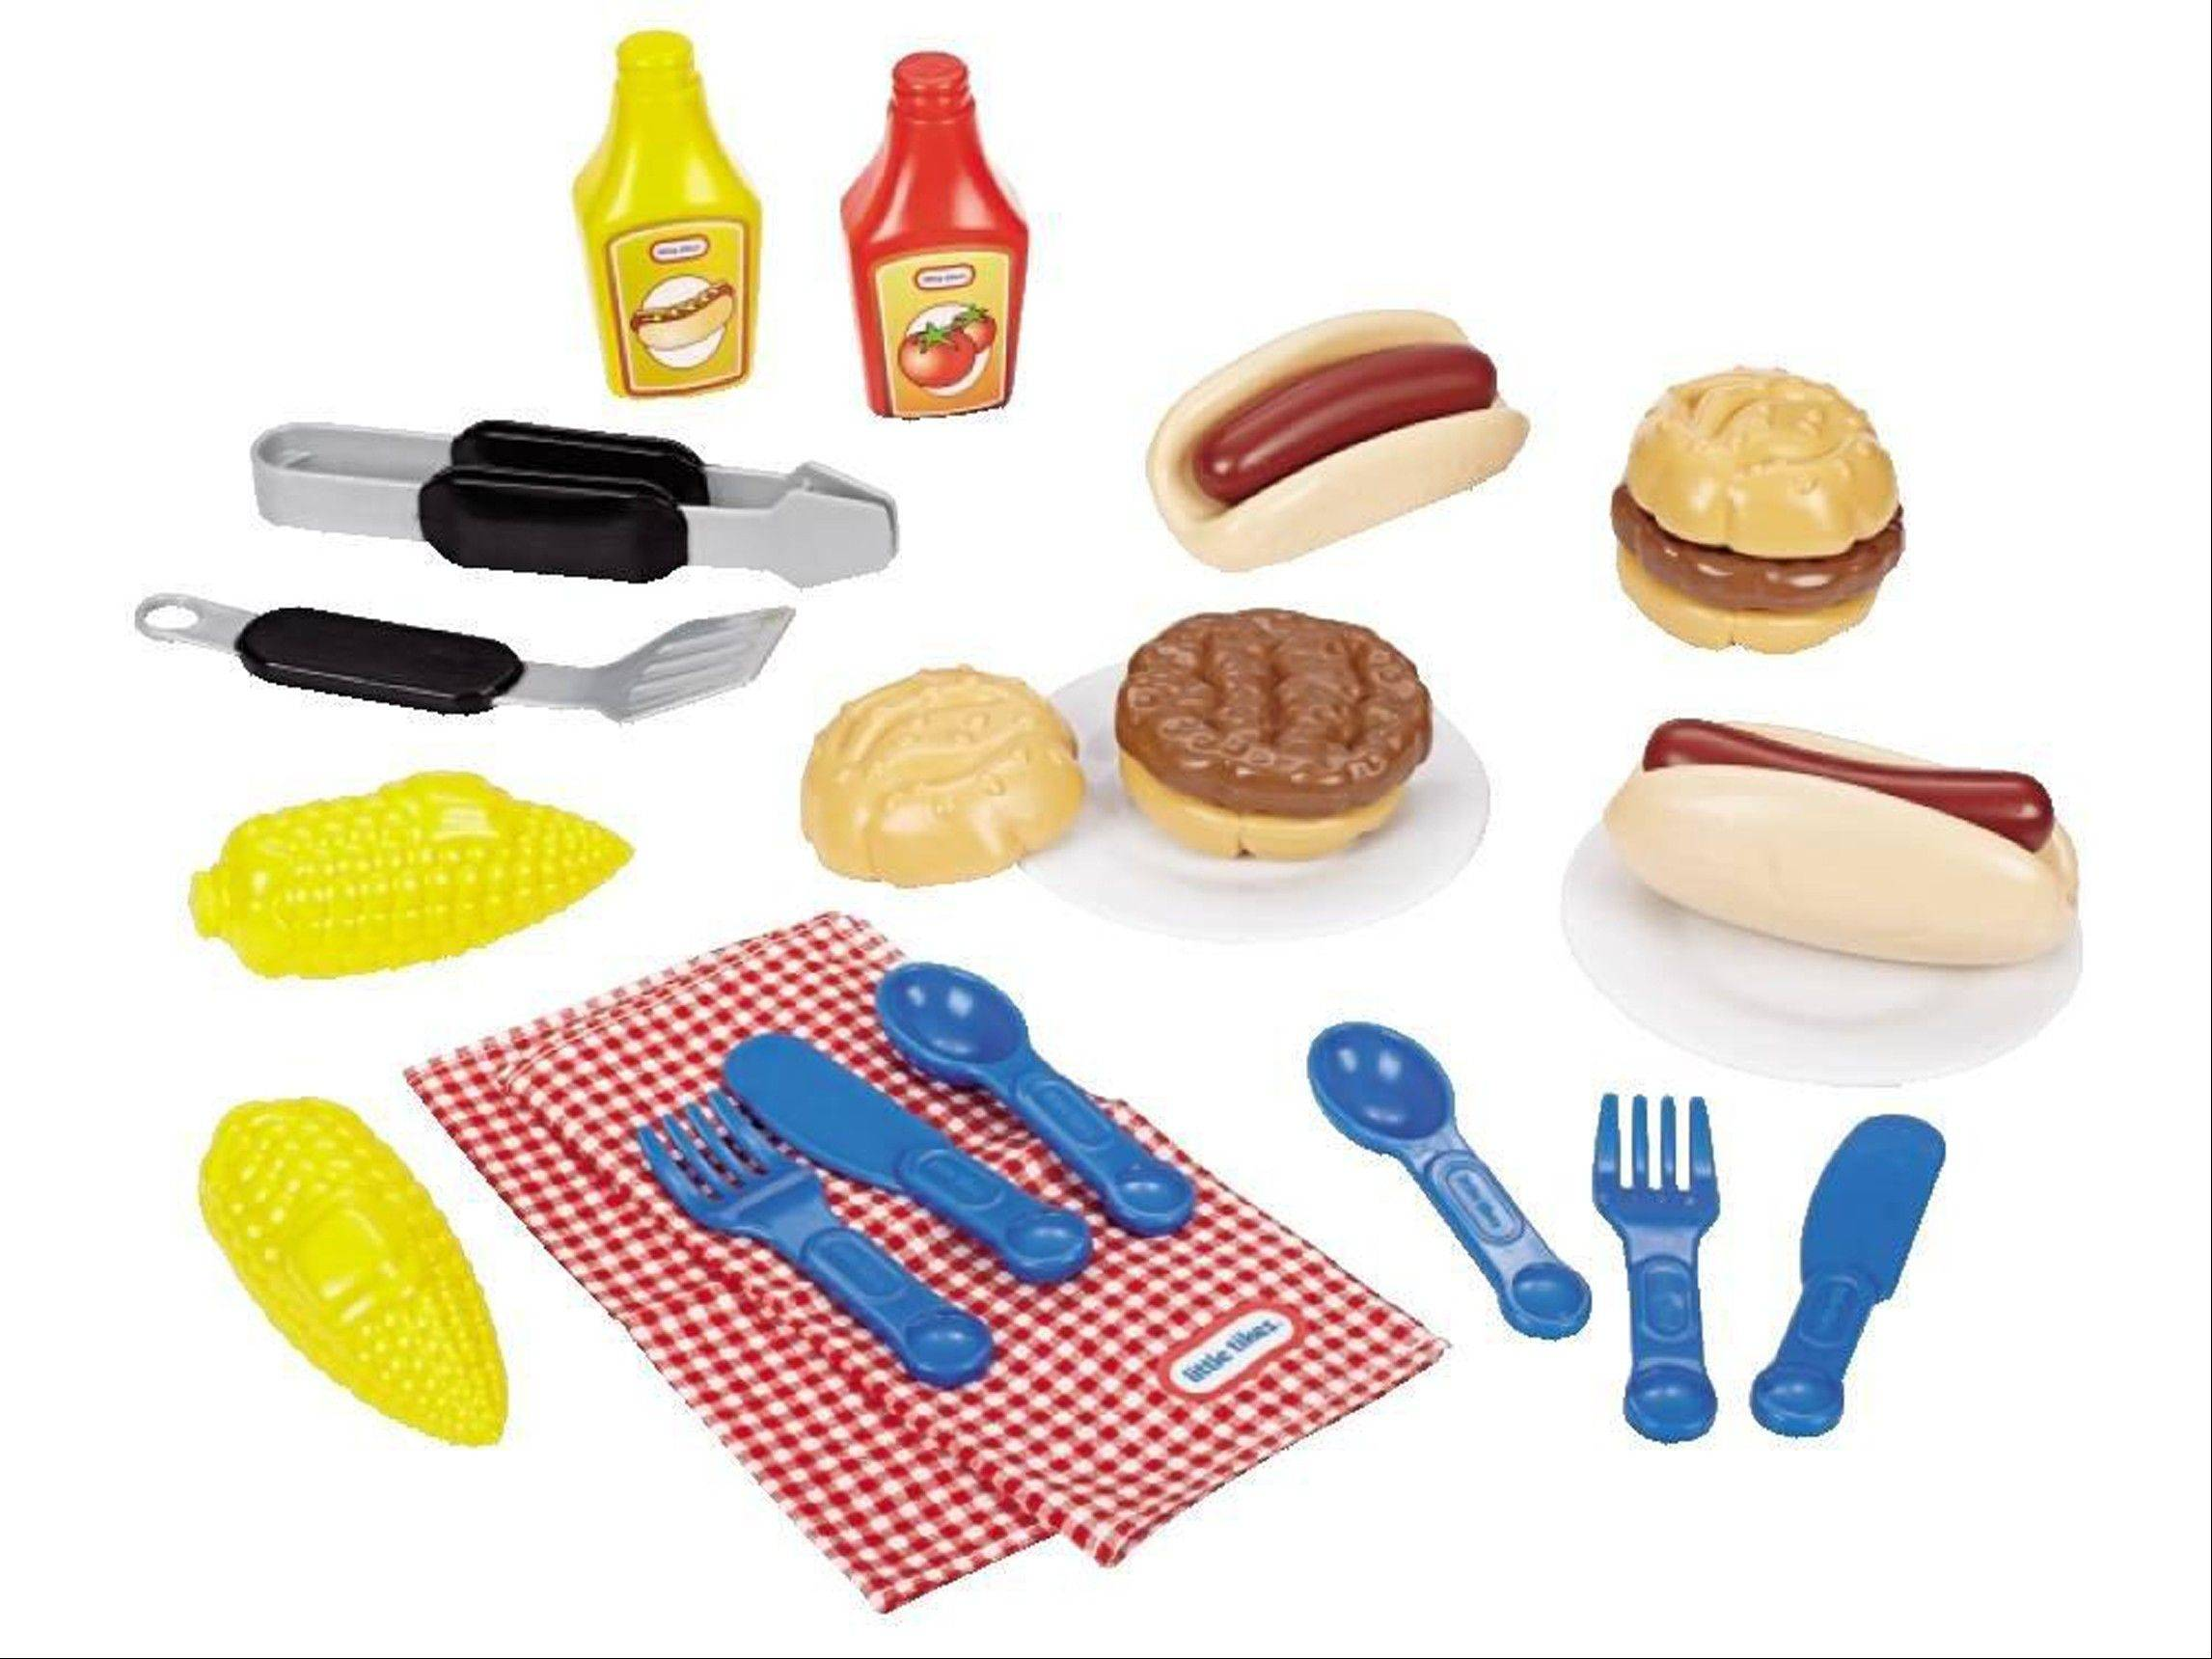 Toys like the Little Tikes Grillin' Goodies Play Barbecue Set, available at toysrus.com for $14.99, encourage children with autism to engage in shared play, experts say.